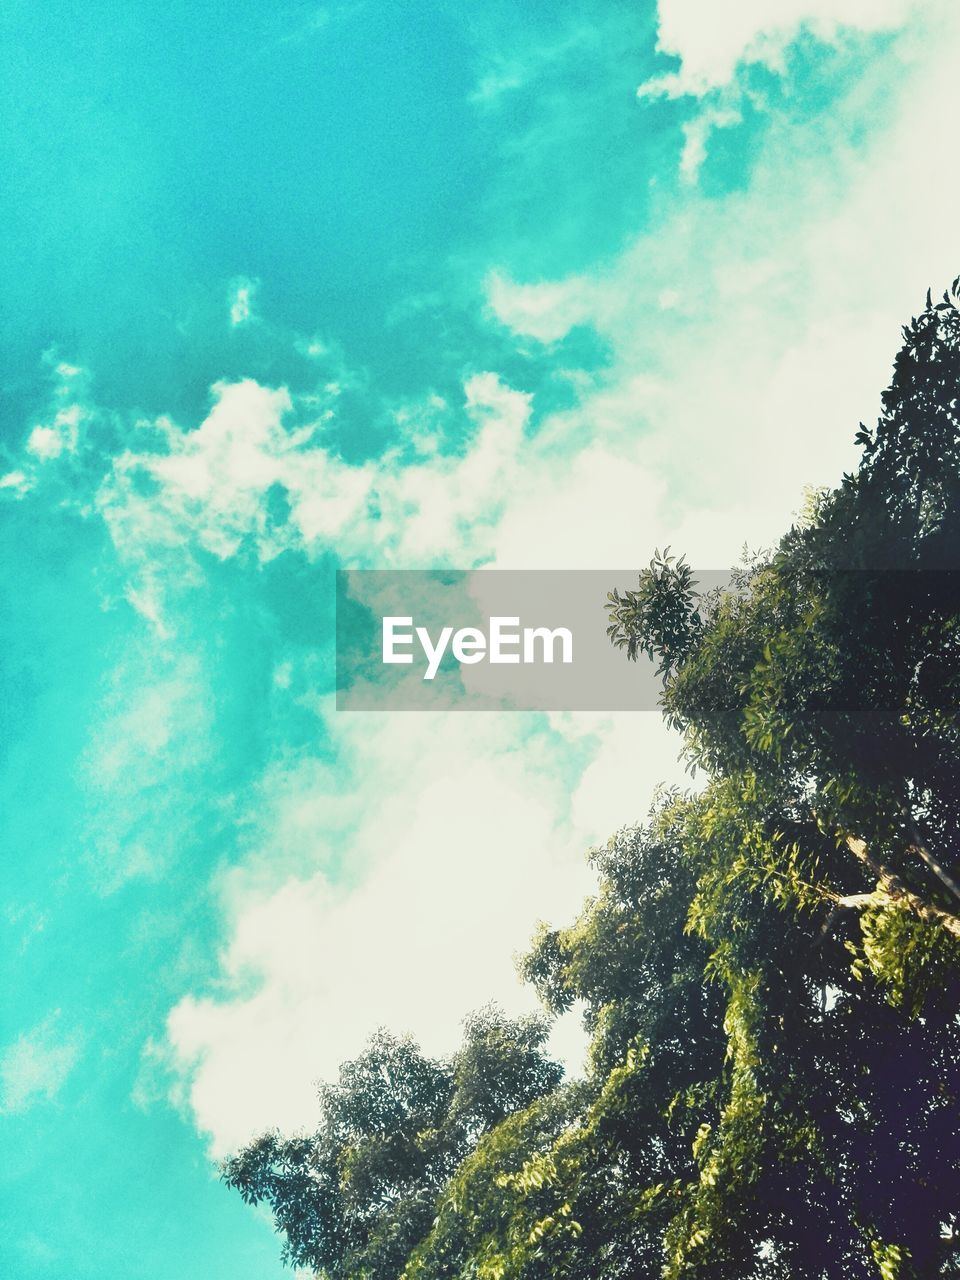 Tree Nature Sky Water Low Angle View Outdoors Day No People Cloud - Sky Beauty In Nature Scenics Forest EyeEm EyeEm Best Edits EyeEmBestPics The Week On EyeEm EyeEmNewHere EyeEm Gallery Photography High Angle View Tree